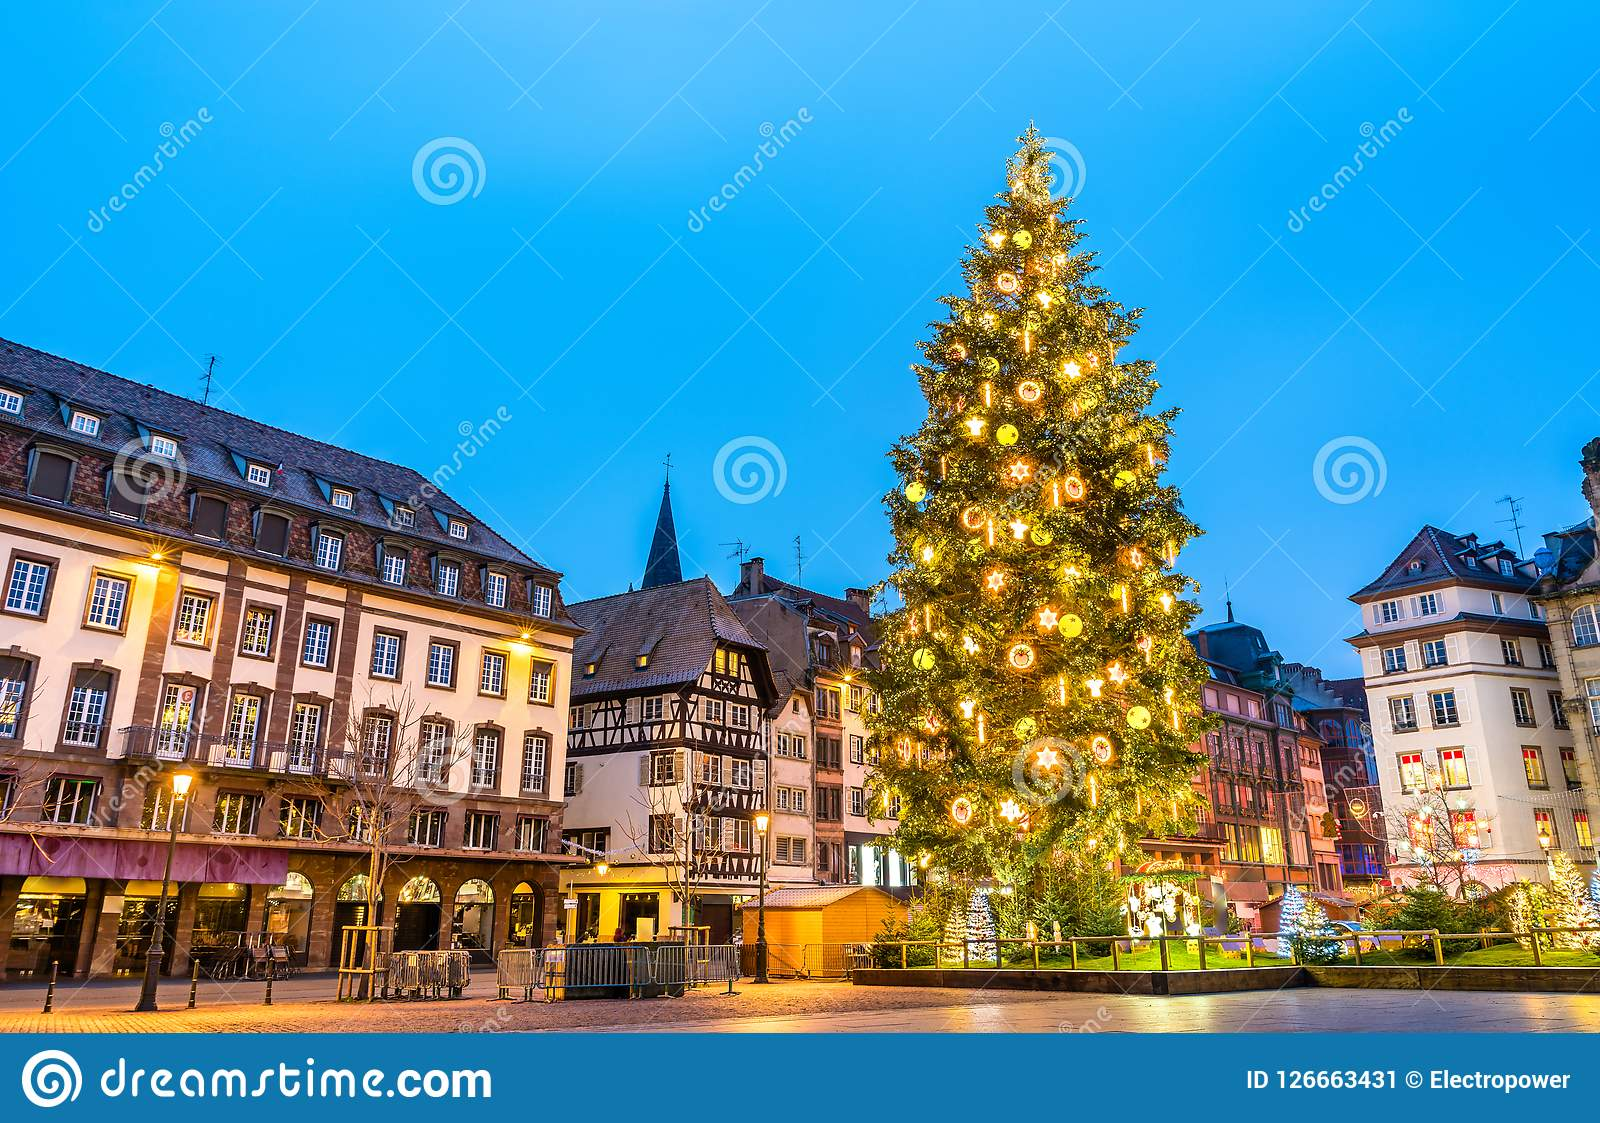 download christmas tree on place kleber in strasbourg france stock image image of capital - France Christmas